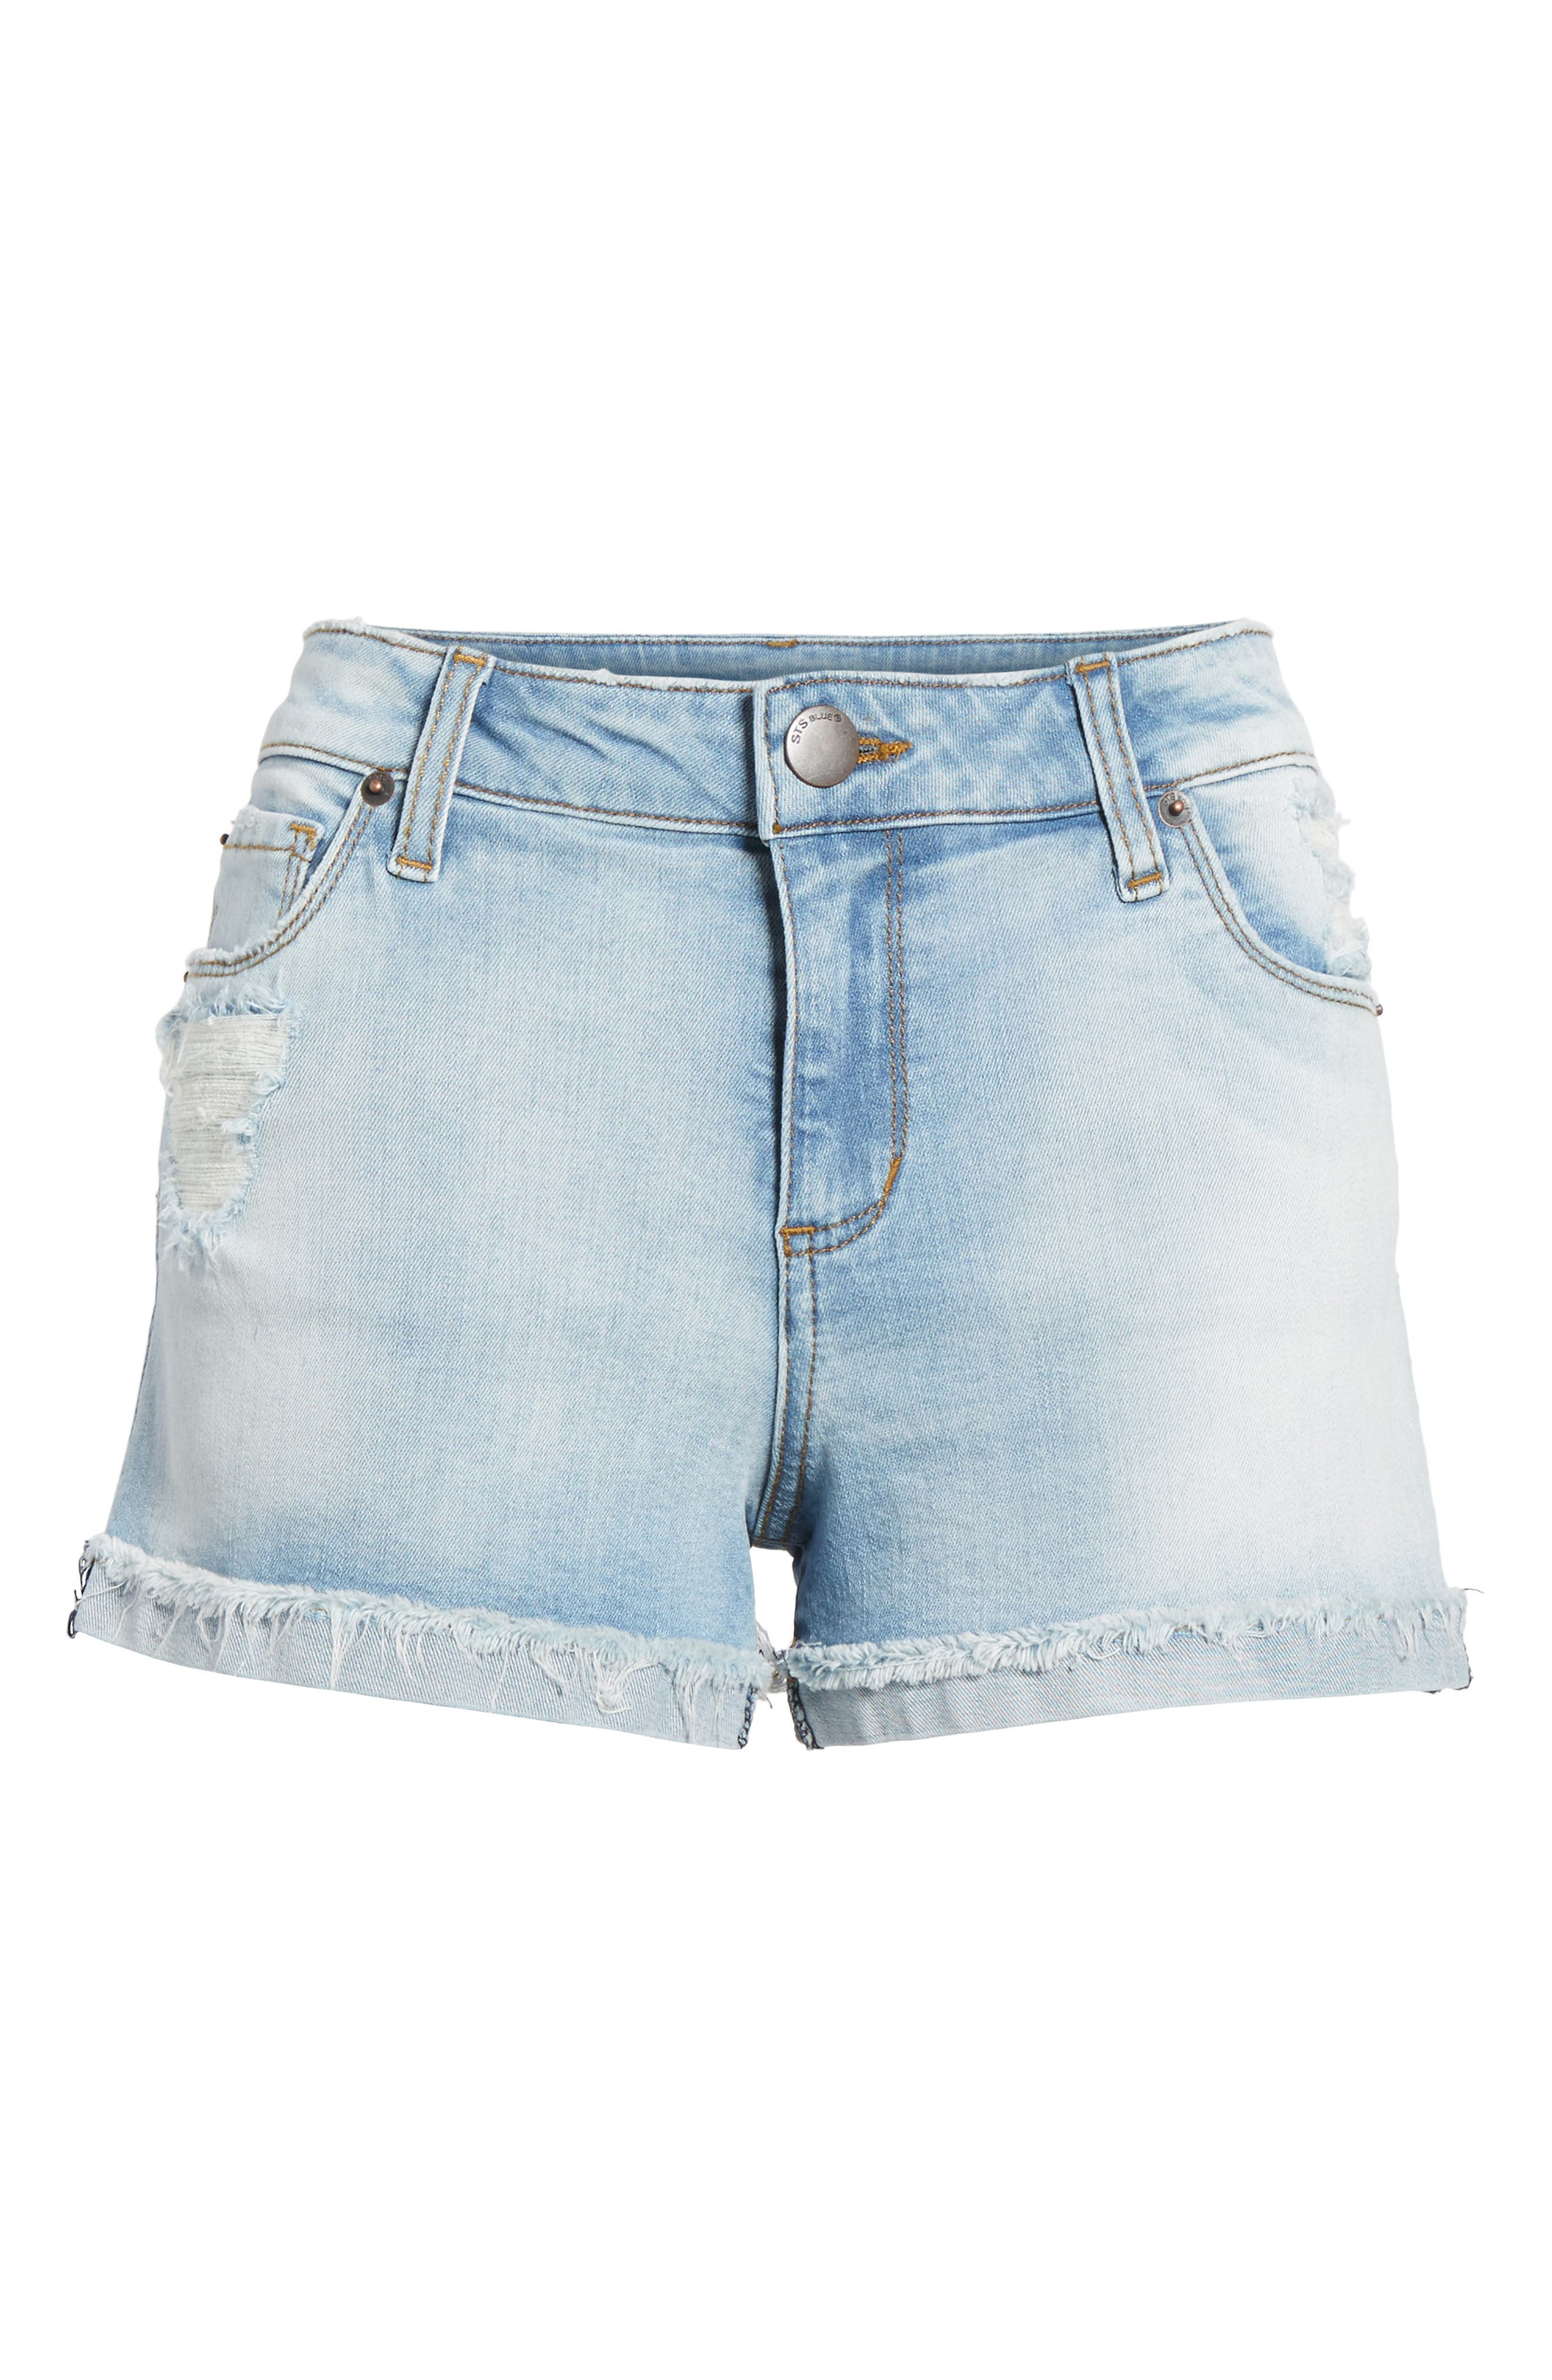 Distressed Denim Boyfriend Shorts,                             Alternate thumbnail 6, color,                             North Clifton